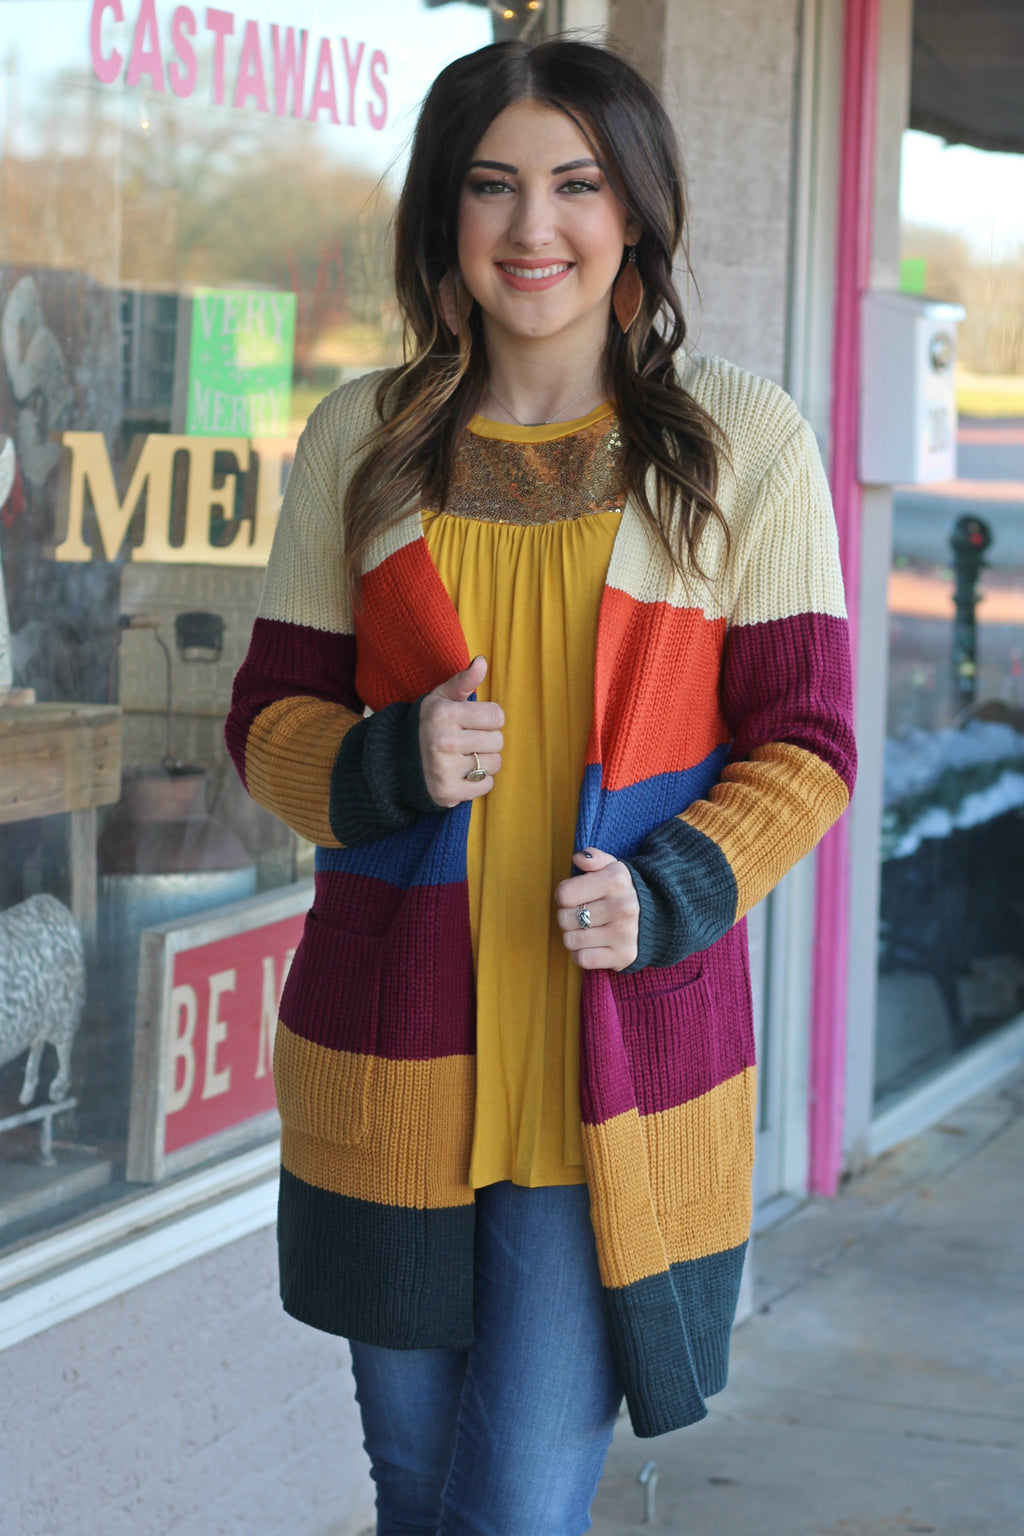 Change Of Season Cardigan - West Avenue